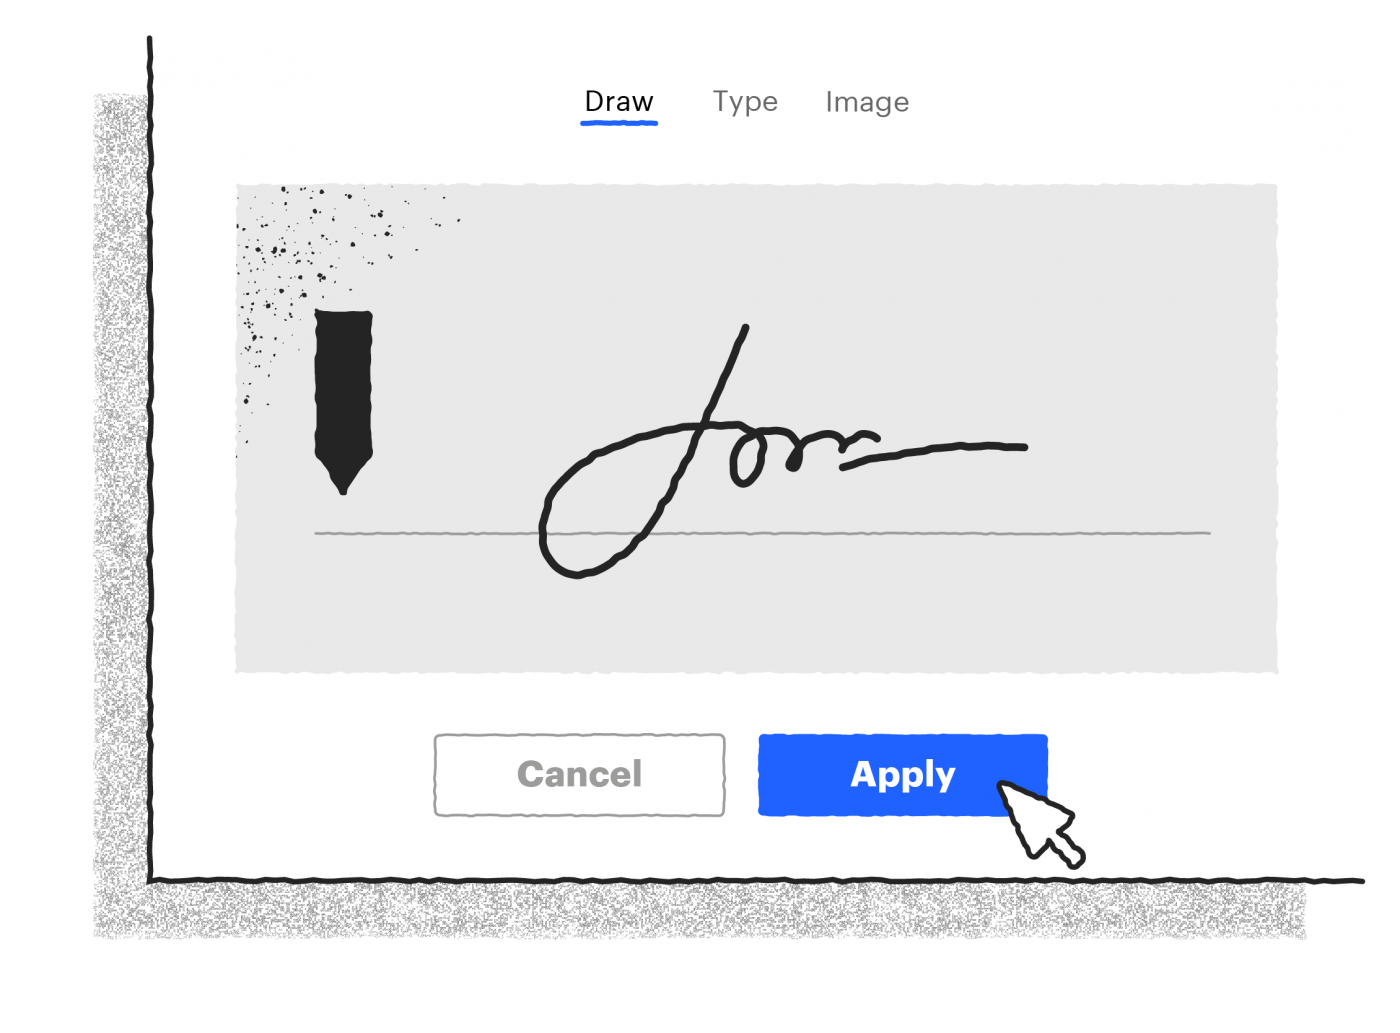 How to sign an electronic form with an electronic signature